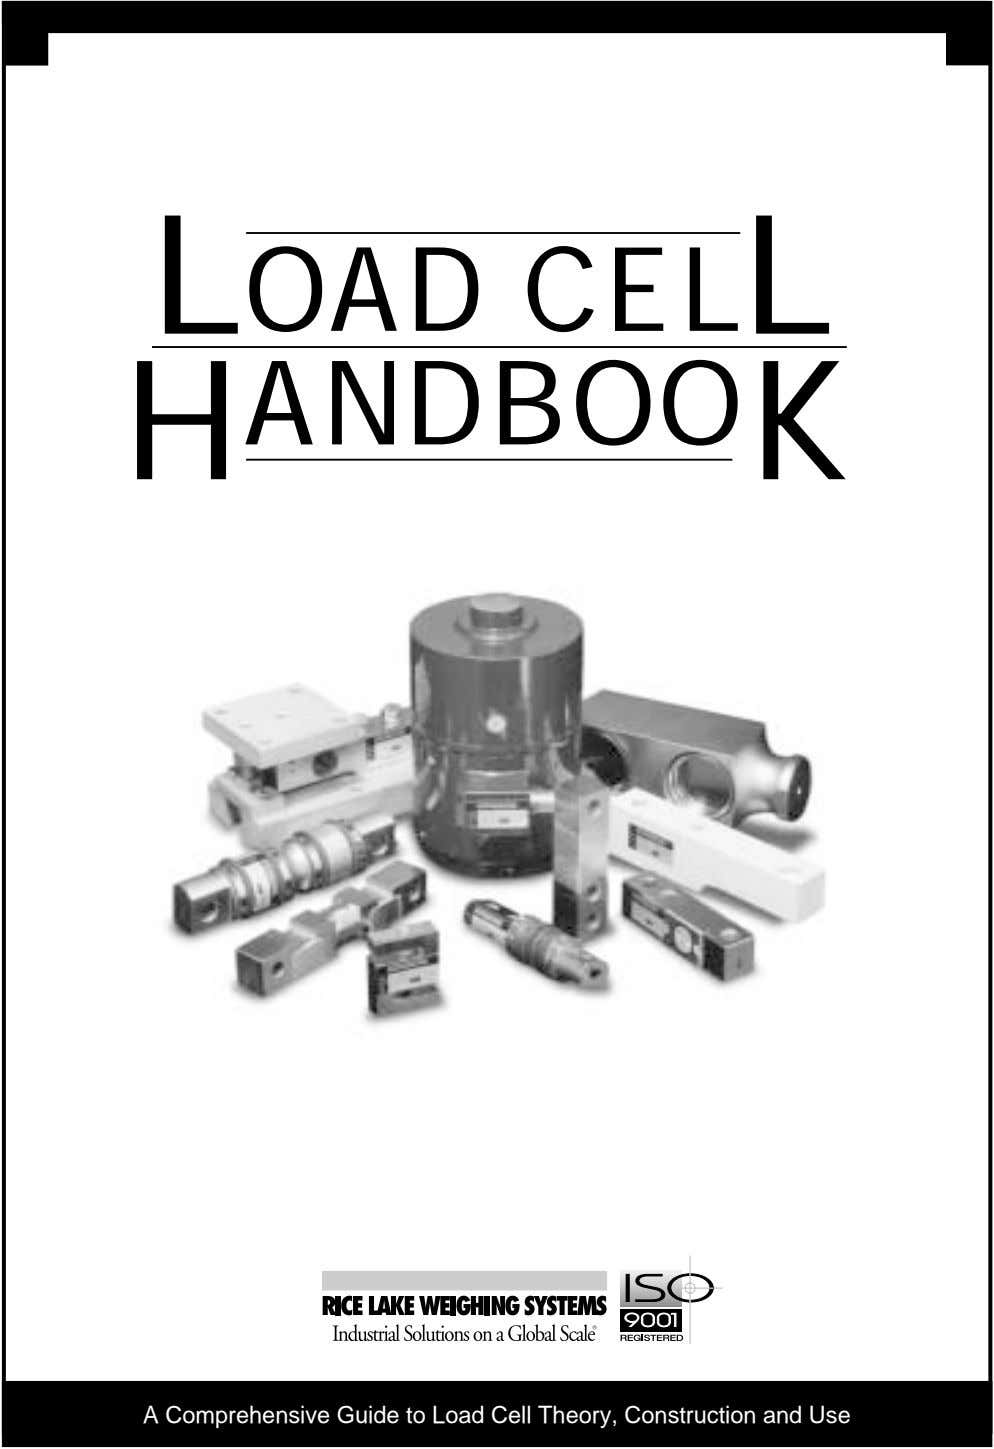 LOAD CELL H ANDBOO K A Comprehensive Guide to Load Cell Theory, Construction and Use